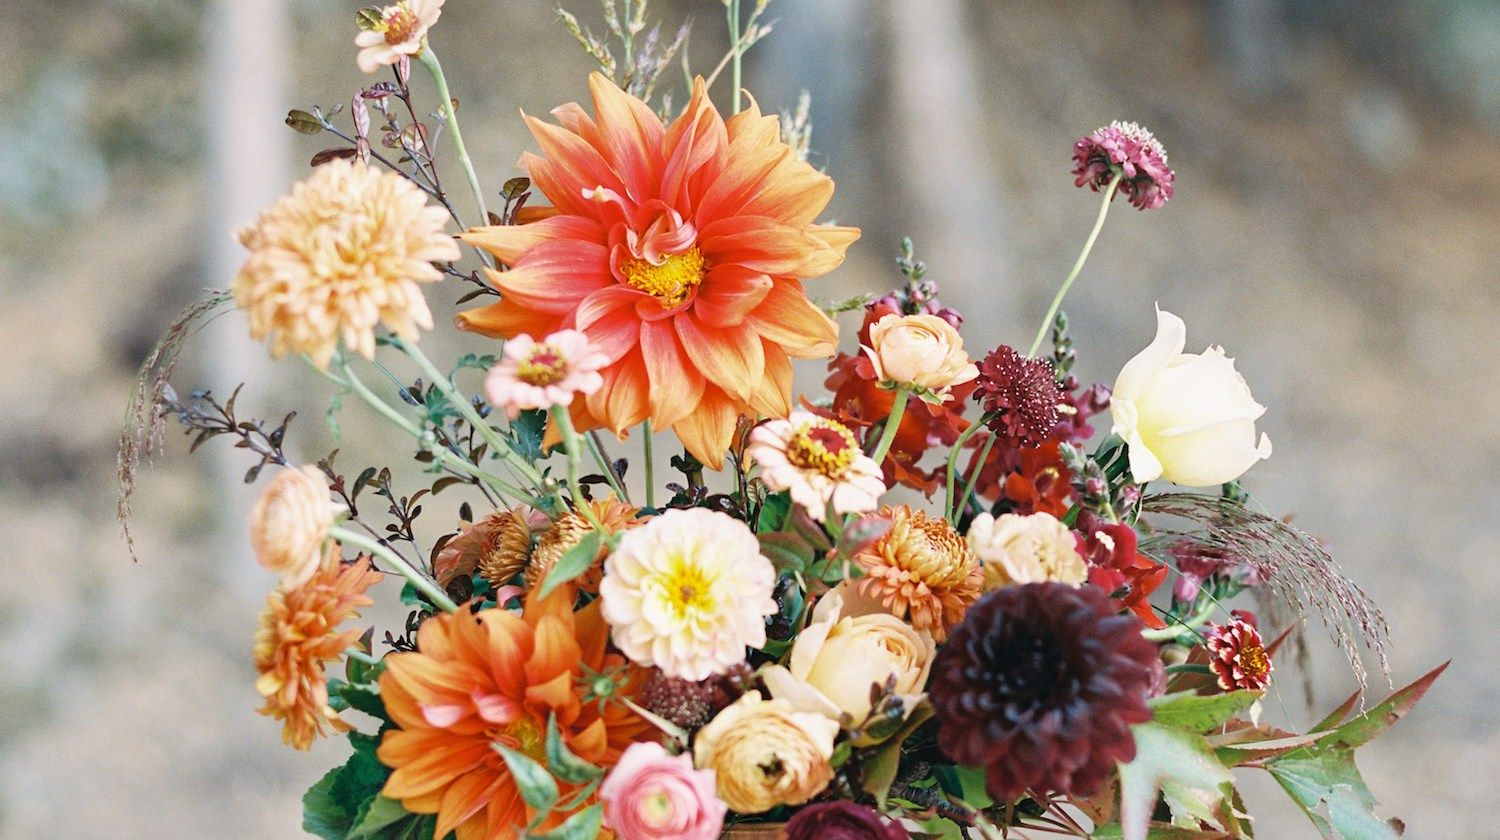 Learn about autumn centerpieces and bouquets and how to make learn about autumn centerpieces and bouquets and how to make beautiful fall flower arrangements from izmirmasajfo